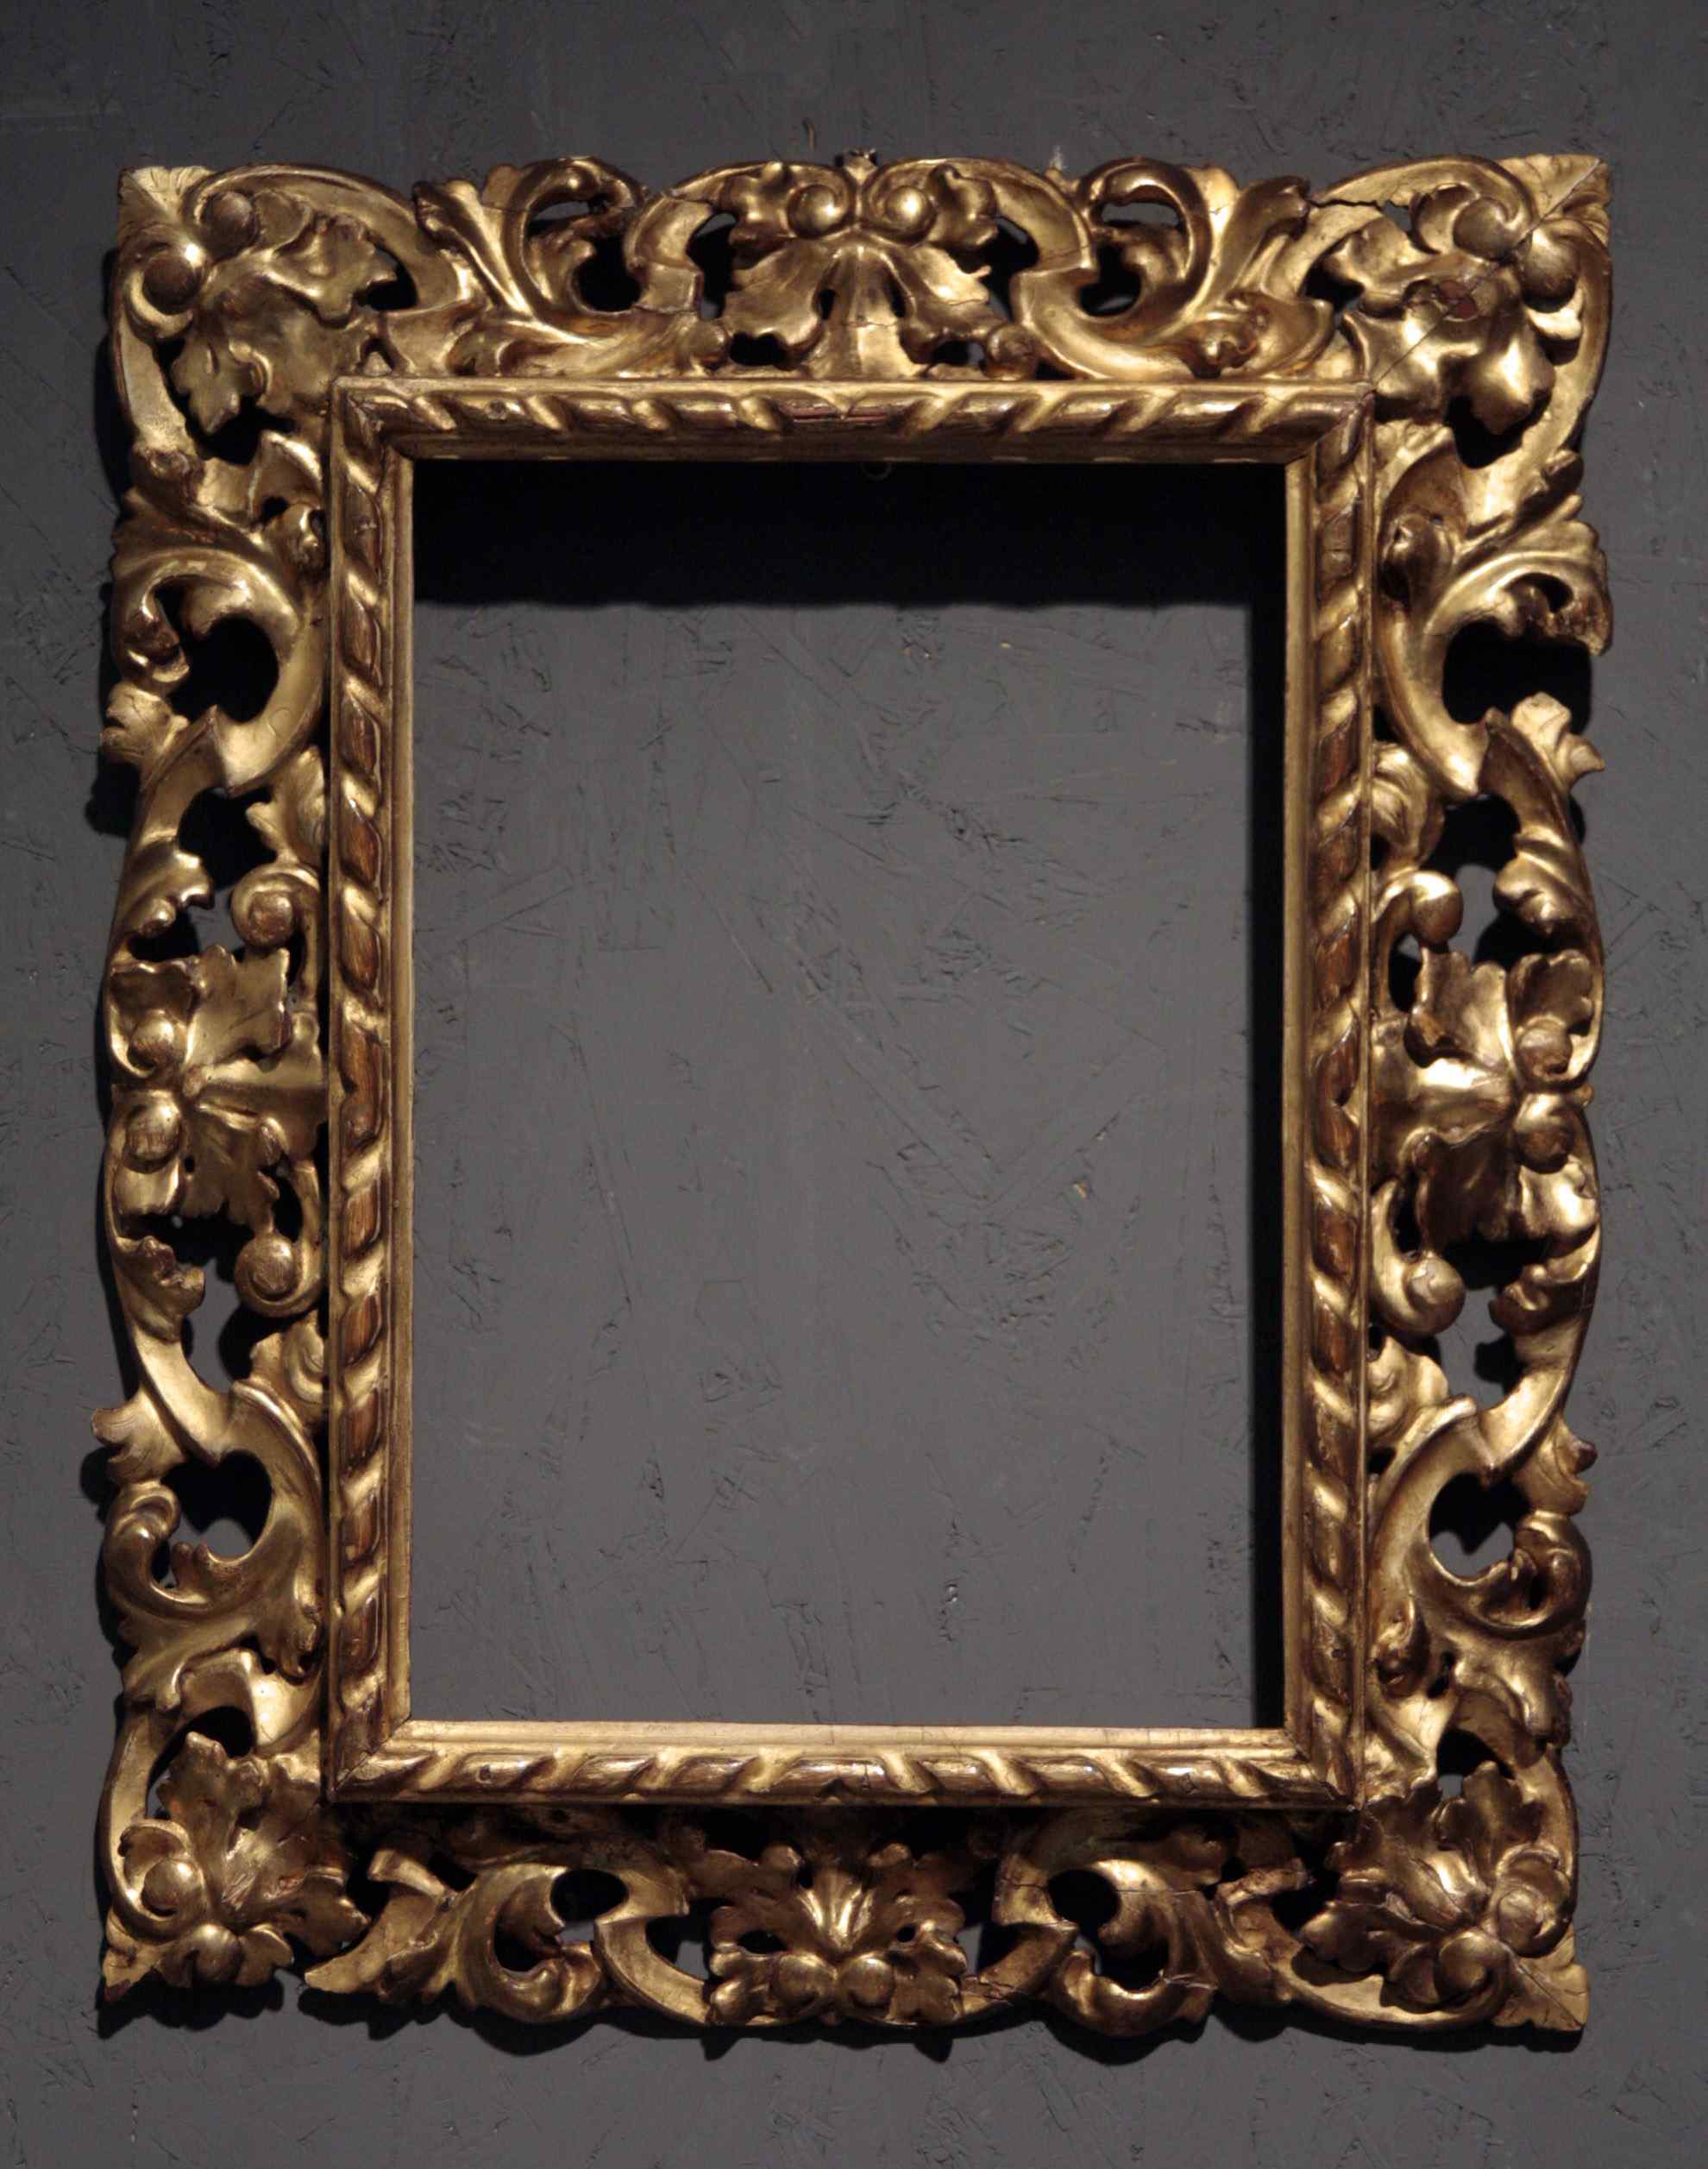 Carved and gilded frame, Tuscany, end of the century XVIII